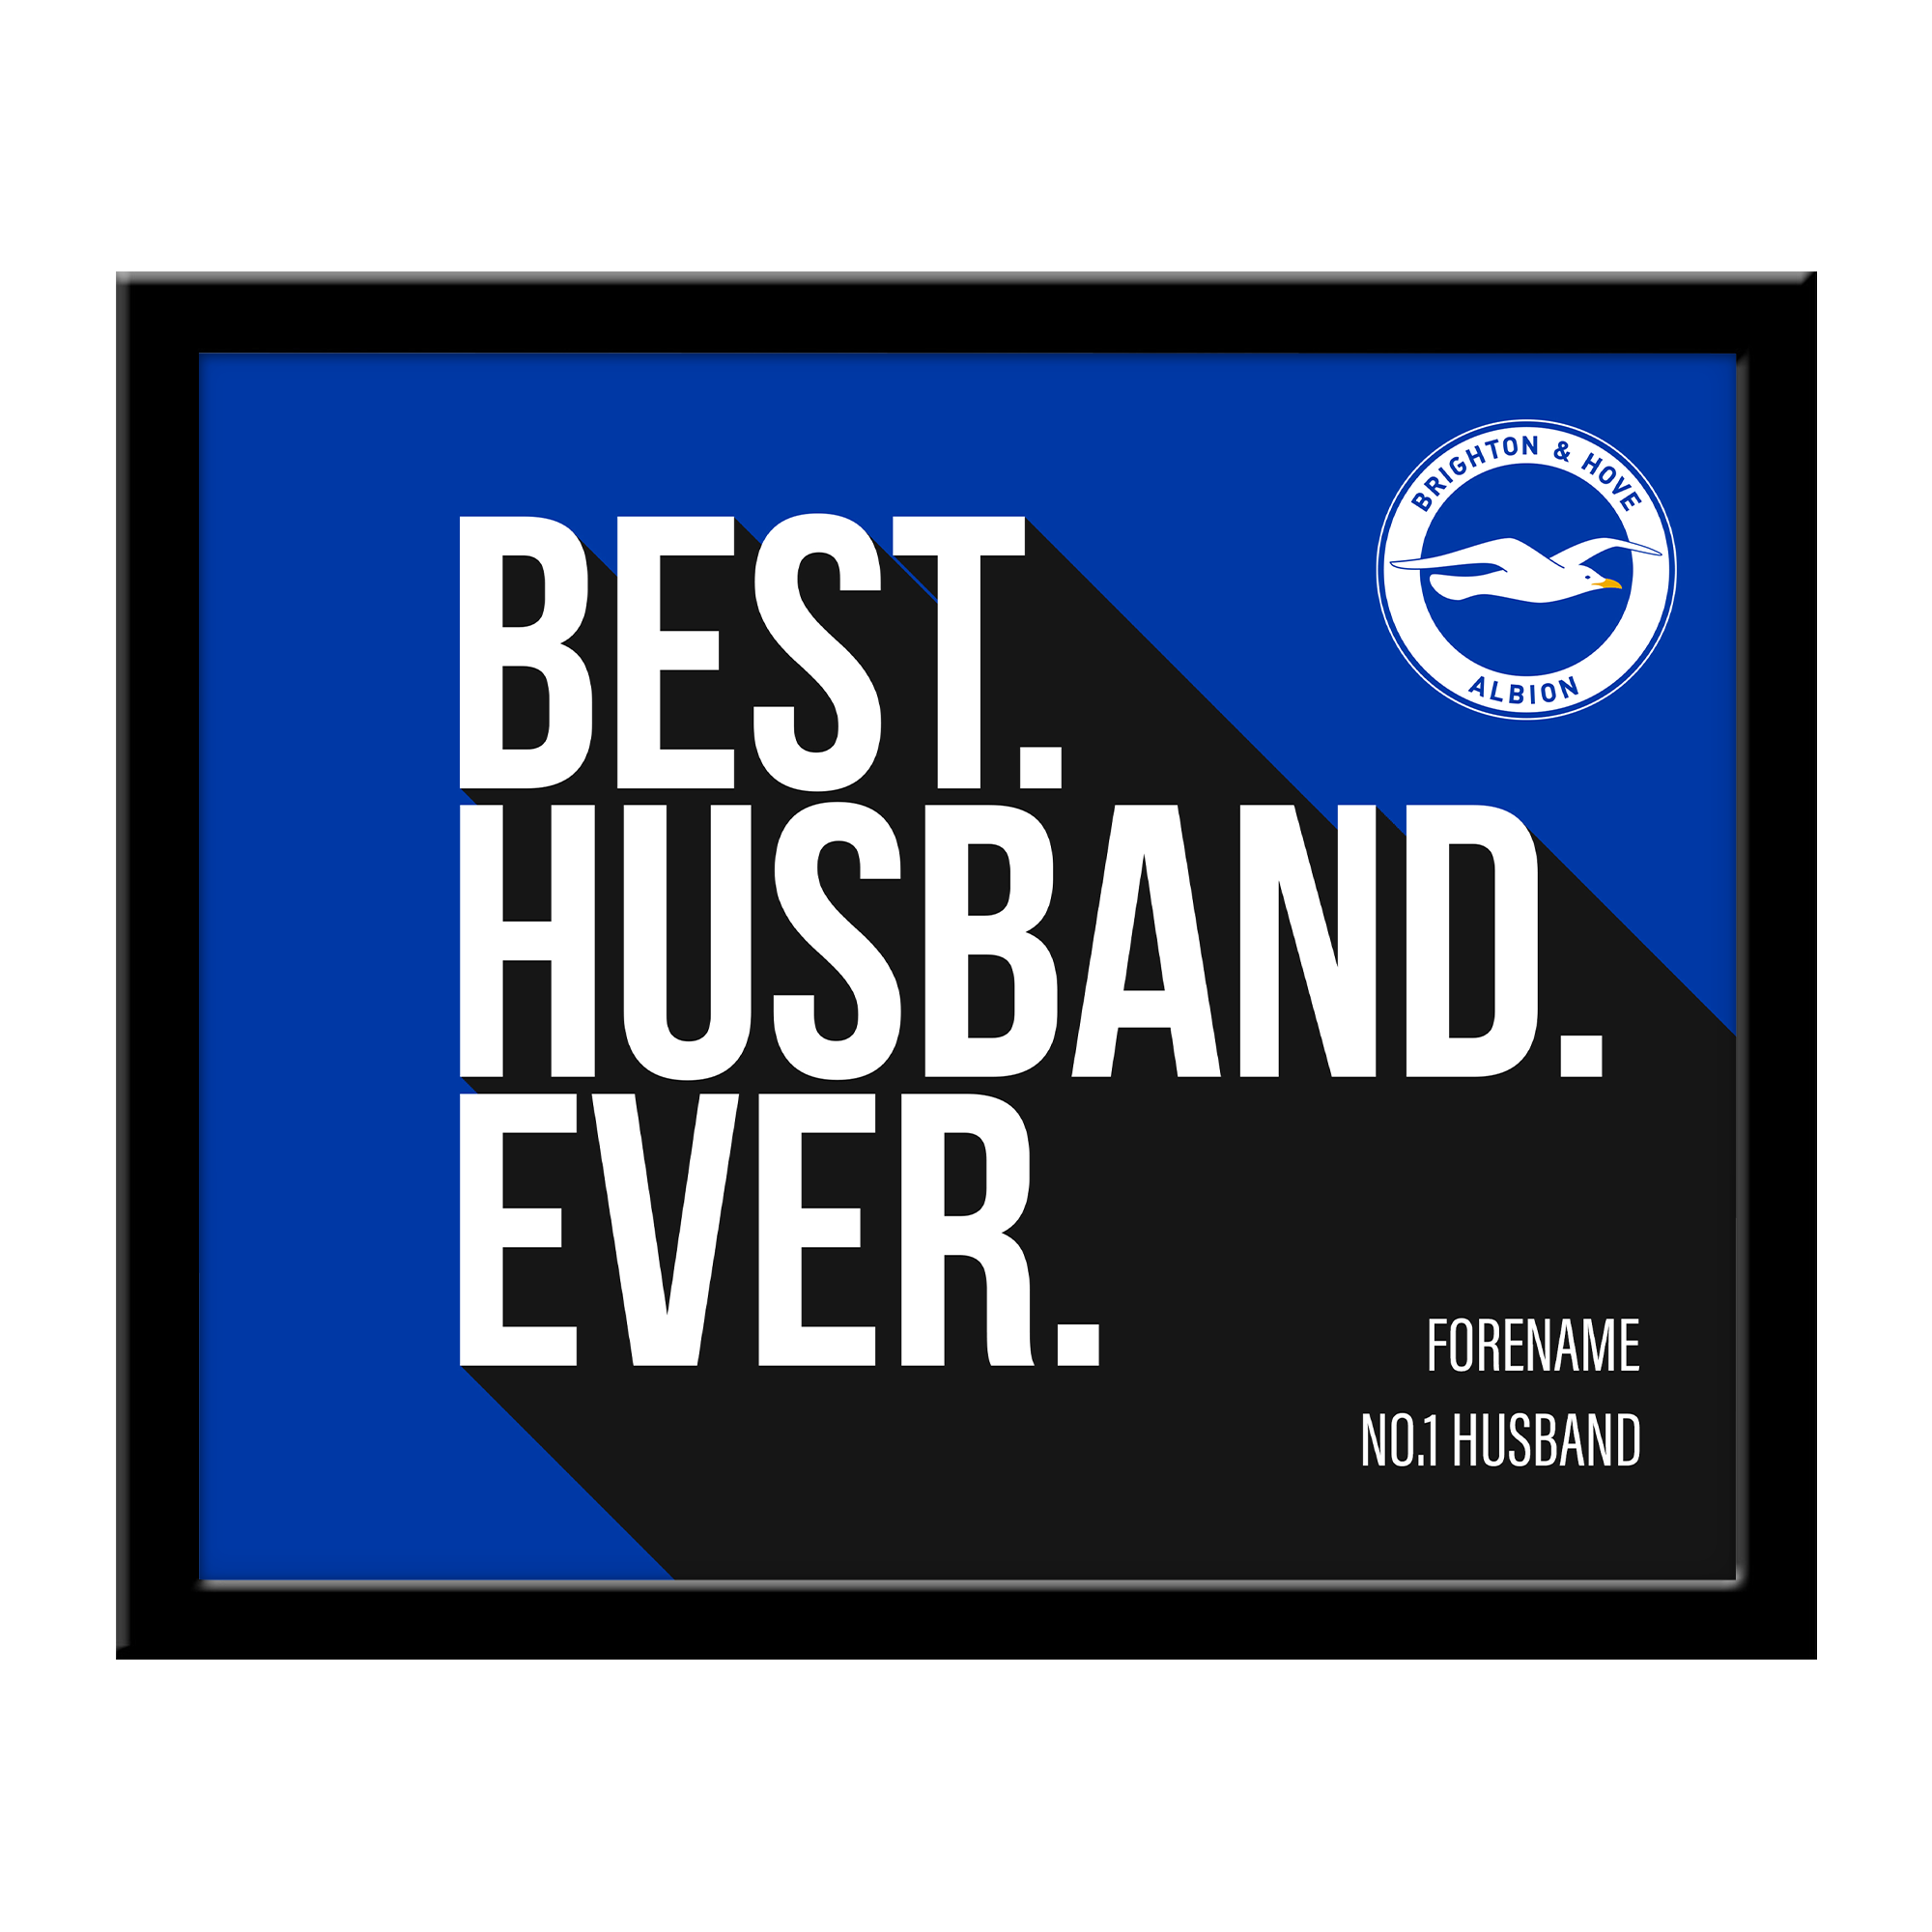 Brighton & Hove Albion FC Best Husband Ever 10 x 8 Photo Framed